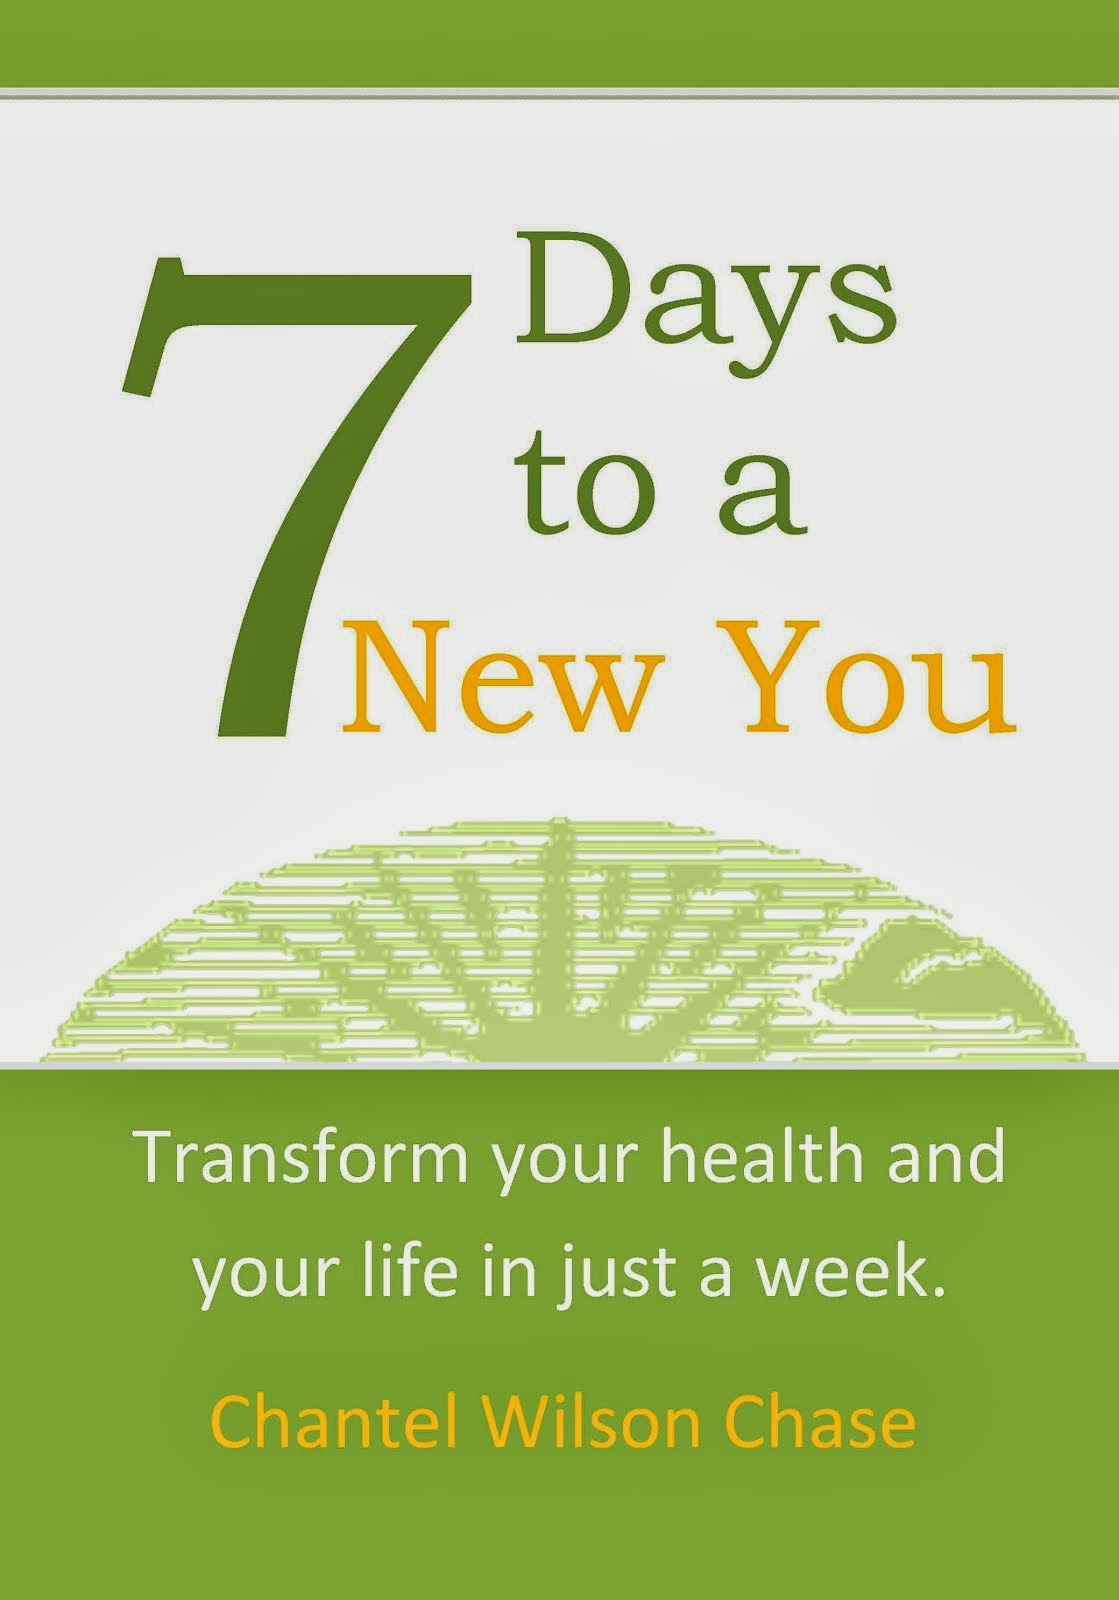 7 Days to a New You